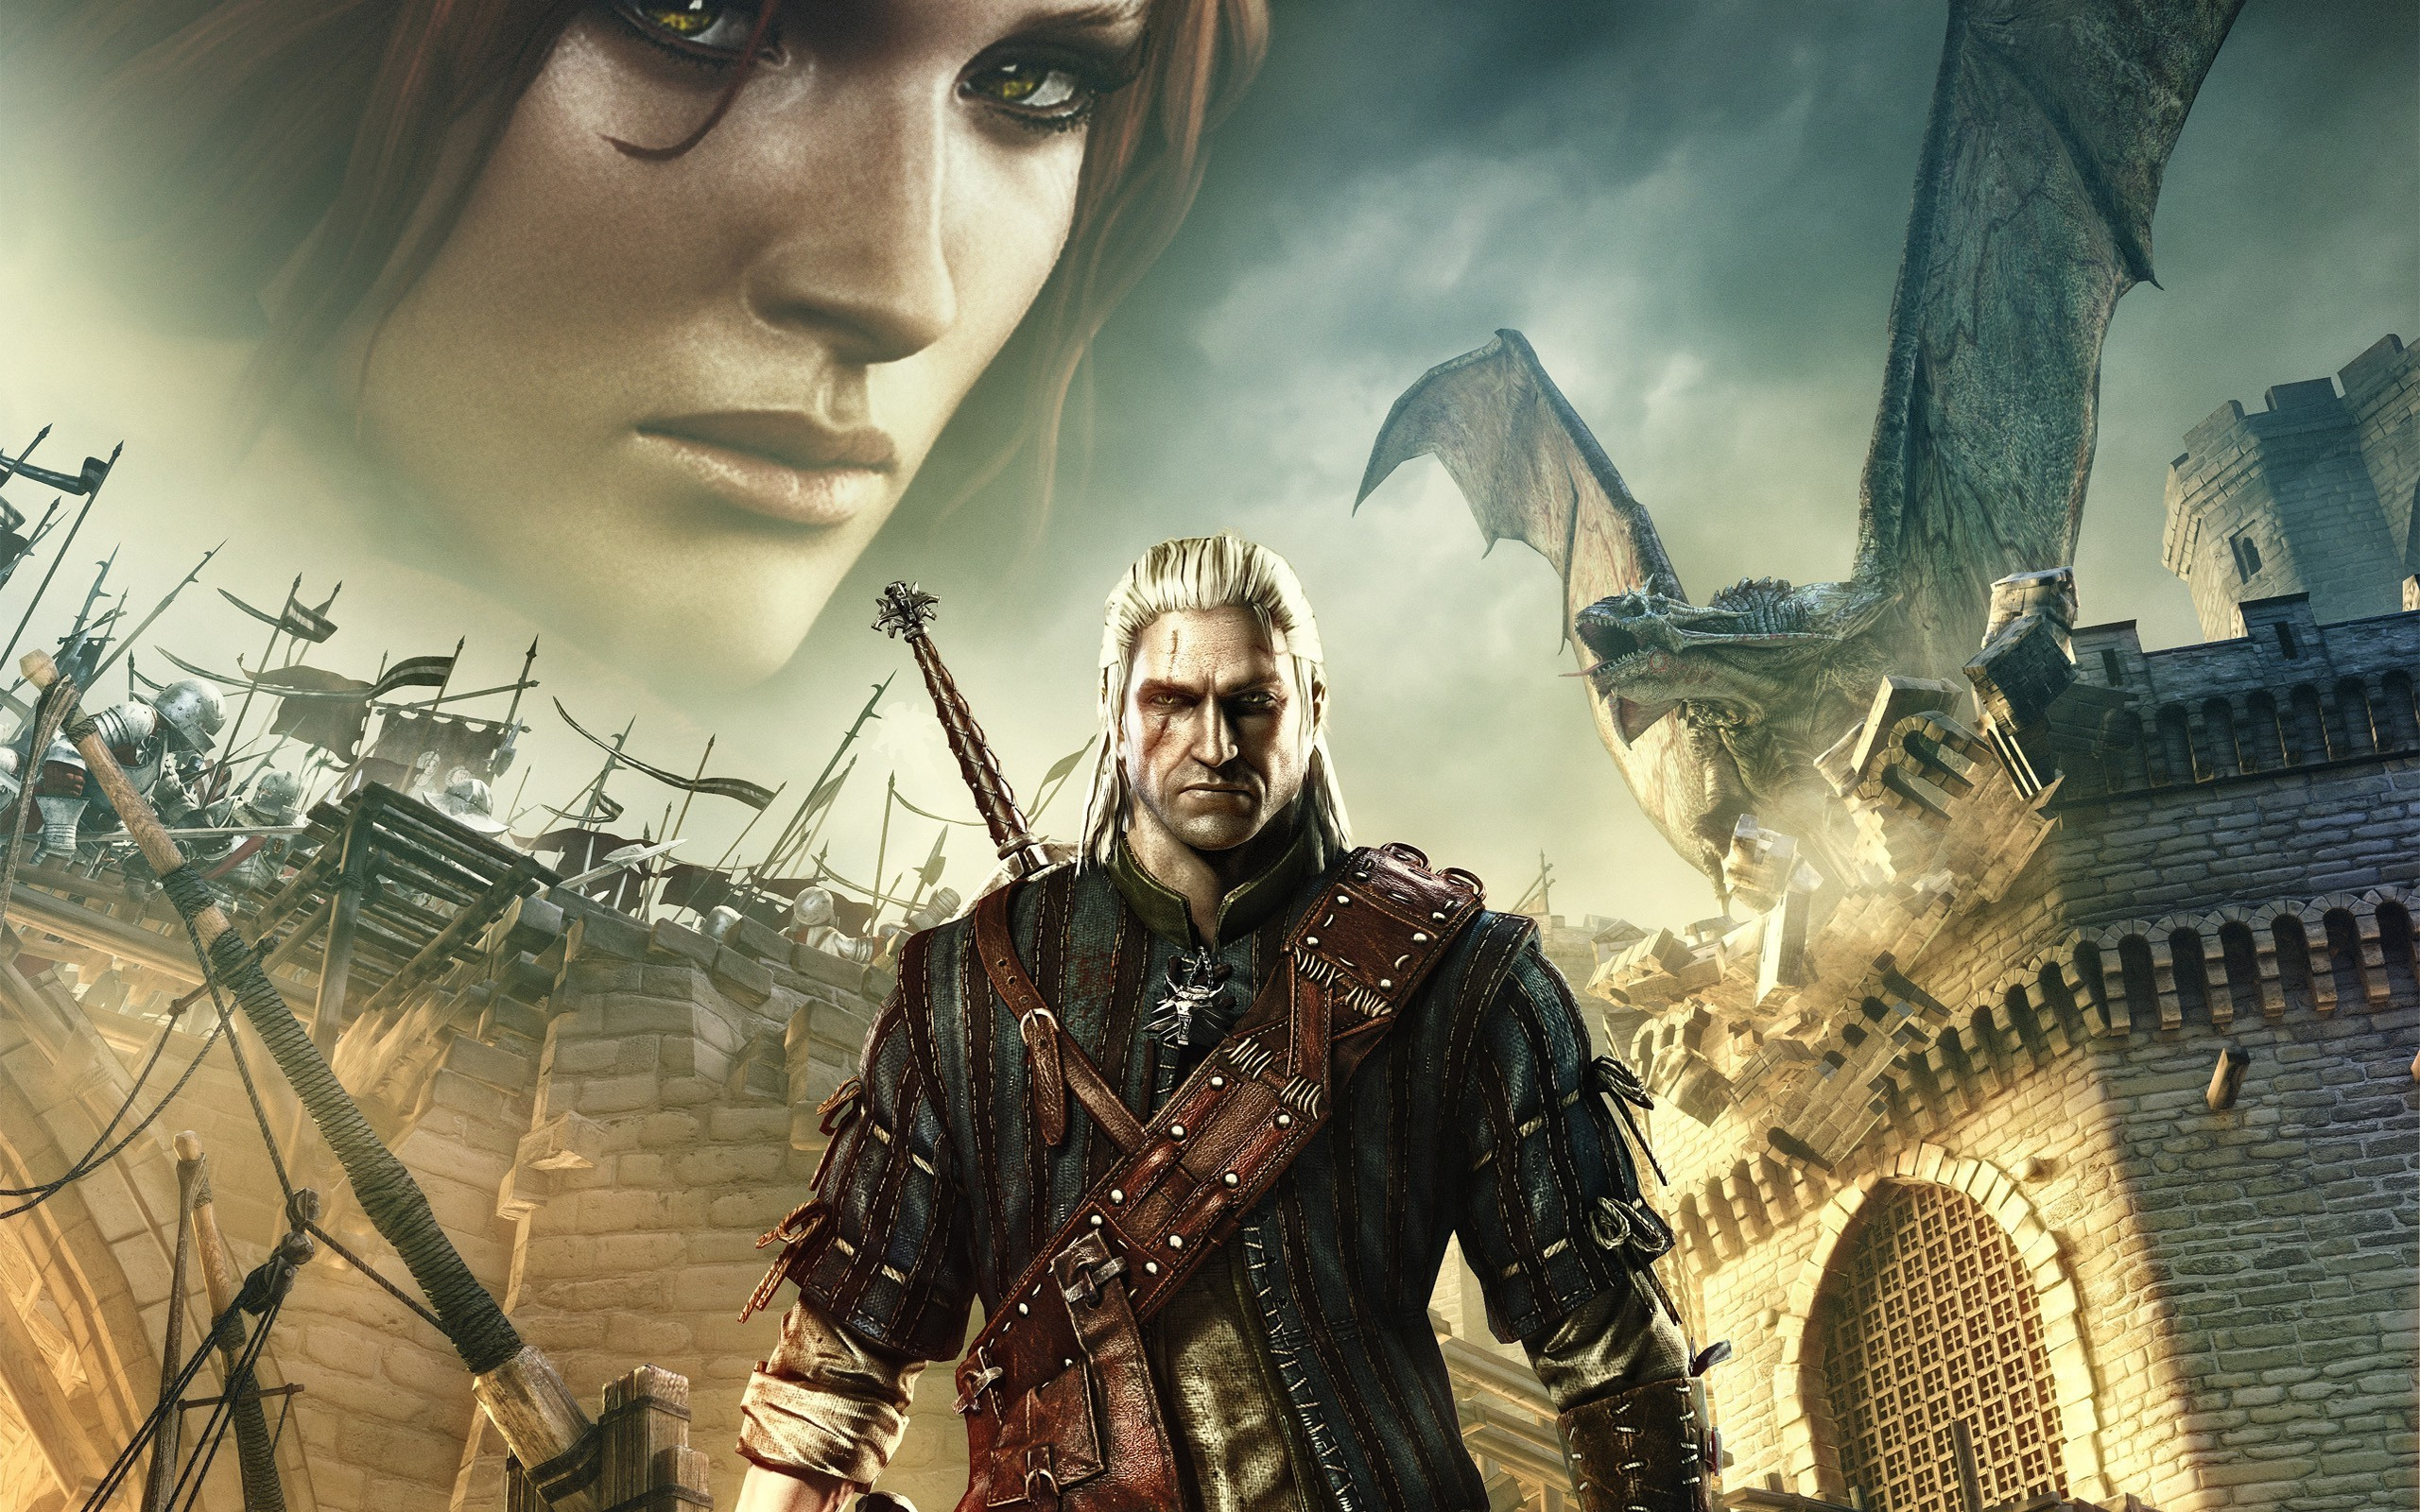 The Witcher 2 Assassins Of Kings, The Witcher, Triss Merigold, Geralt Of  Rivia Wallpaper HD